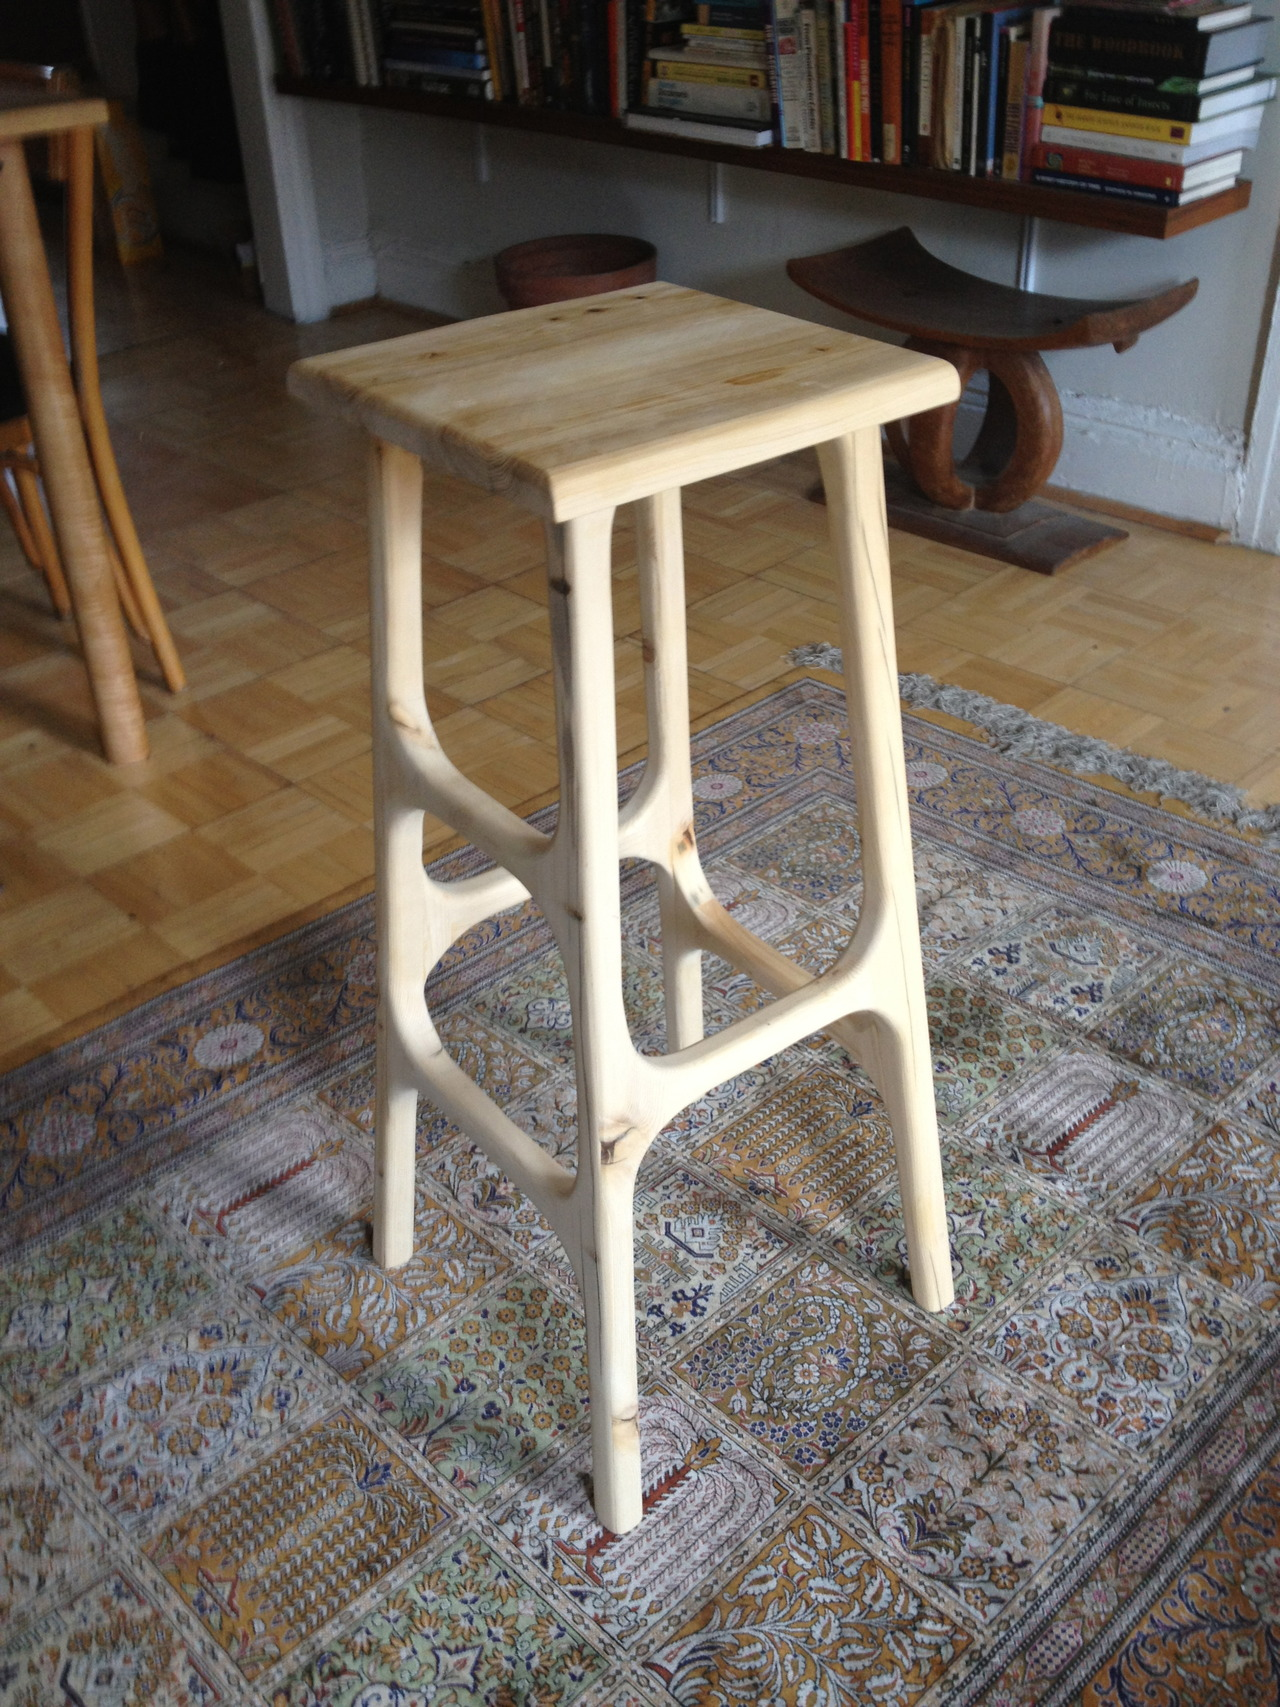 stool prototype, in water tower cedar